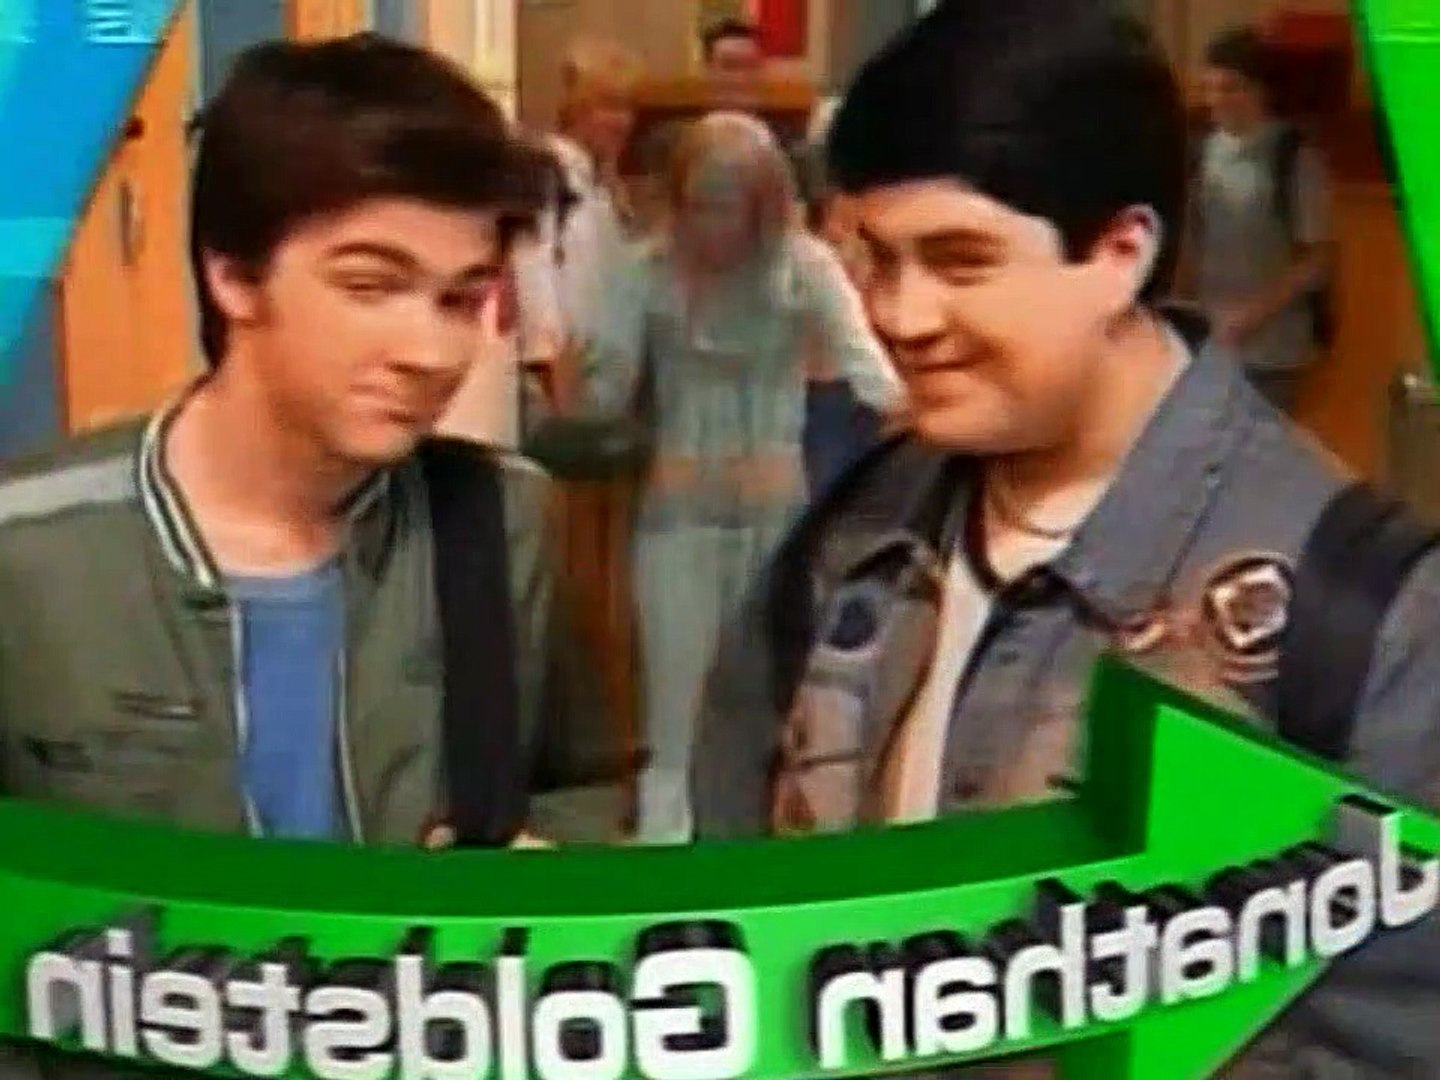 Merry Christmas Drake And Josh Monkey.Drake And Josh S02e13 Drew And Jerry